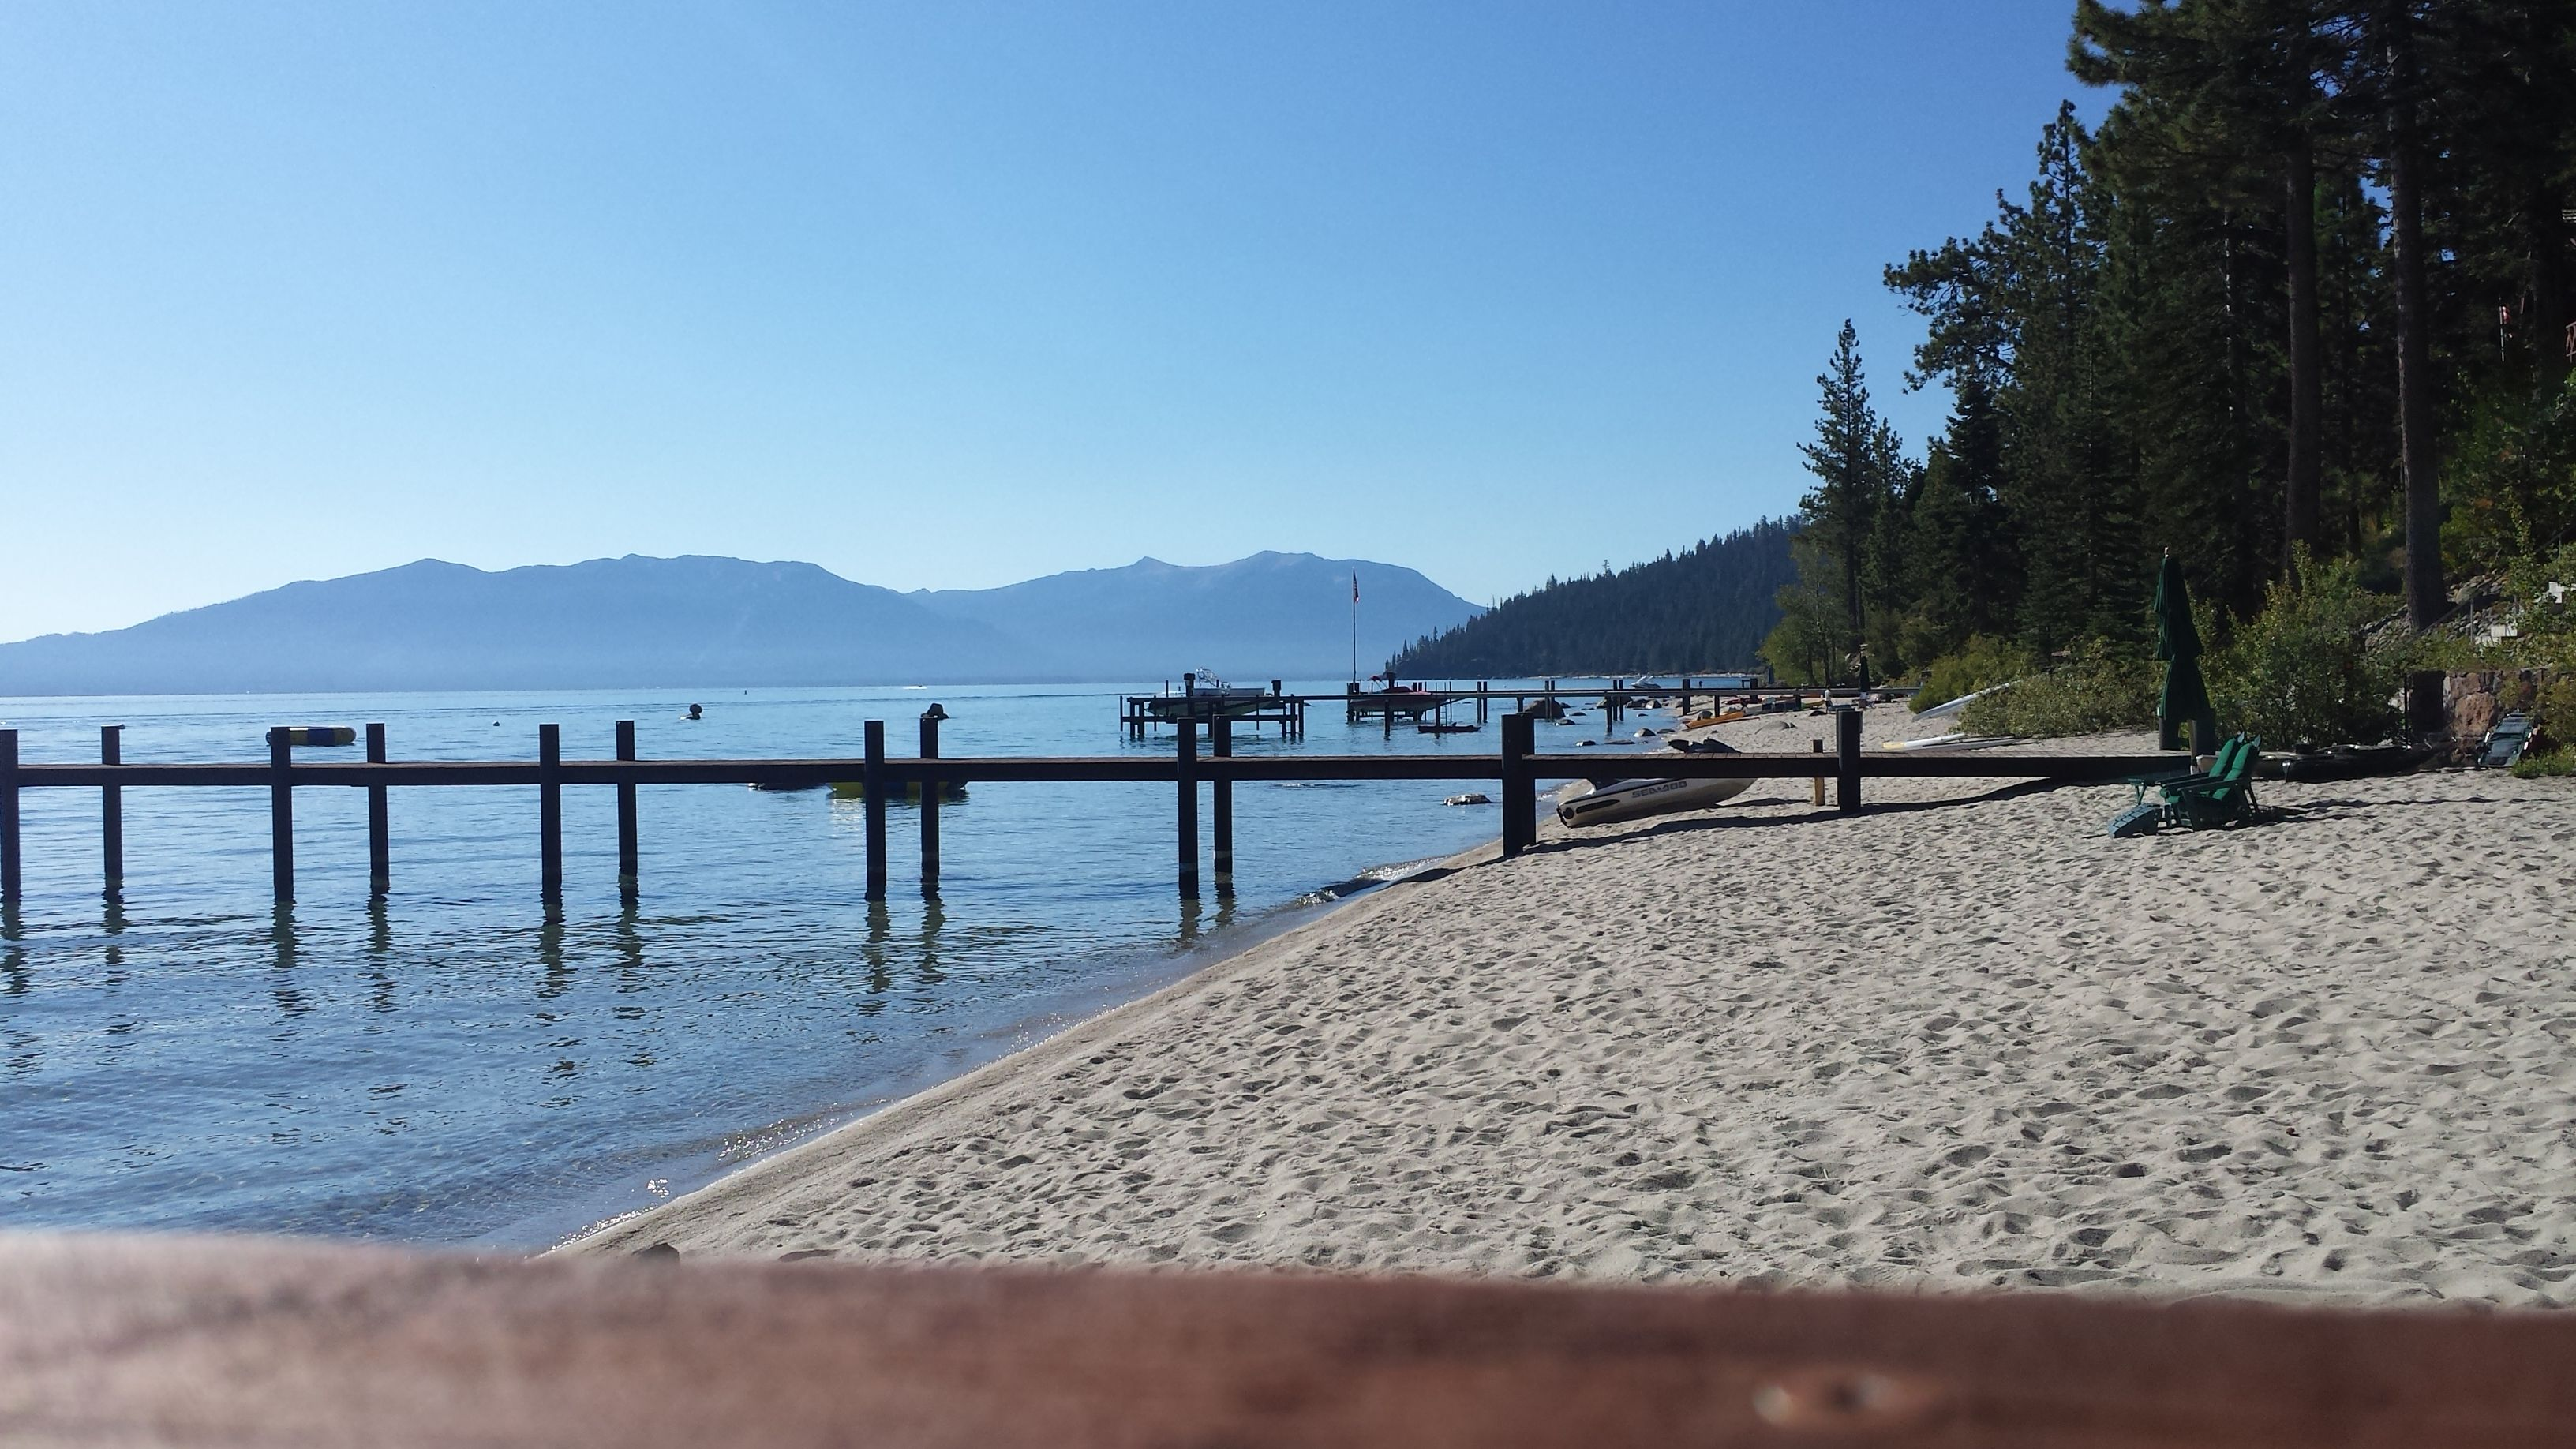 Lake tahoe sunset travel channel pinterest - The Gold Coast Of Rubicon Bay On Lake Tahoe